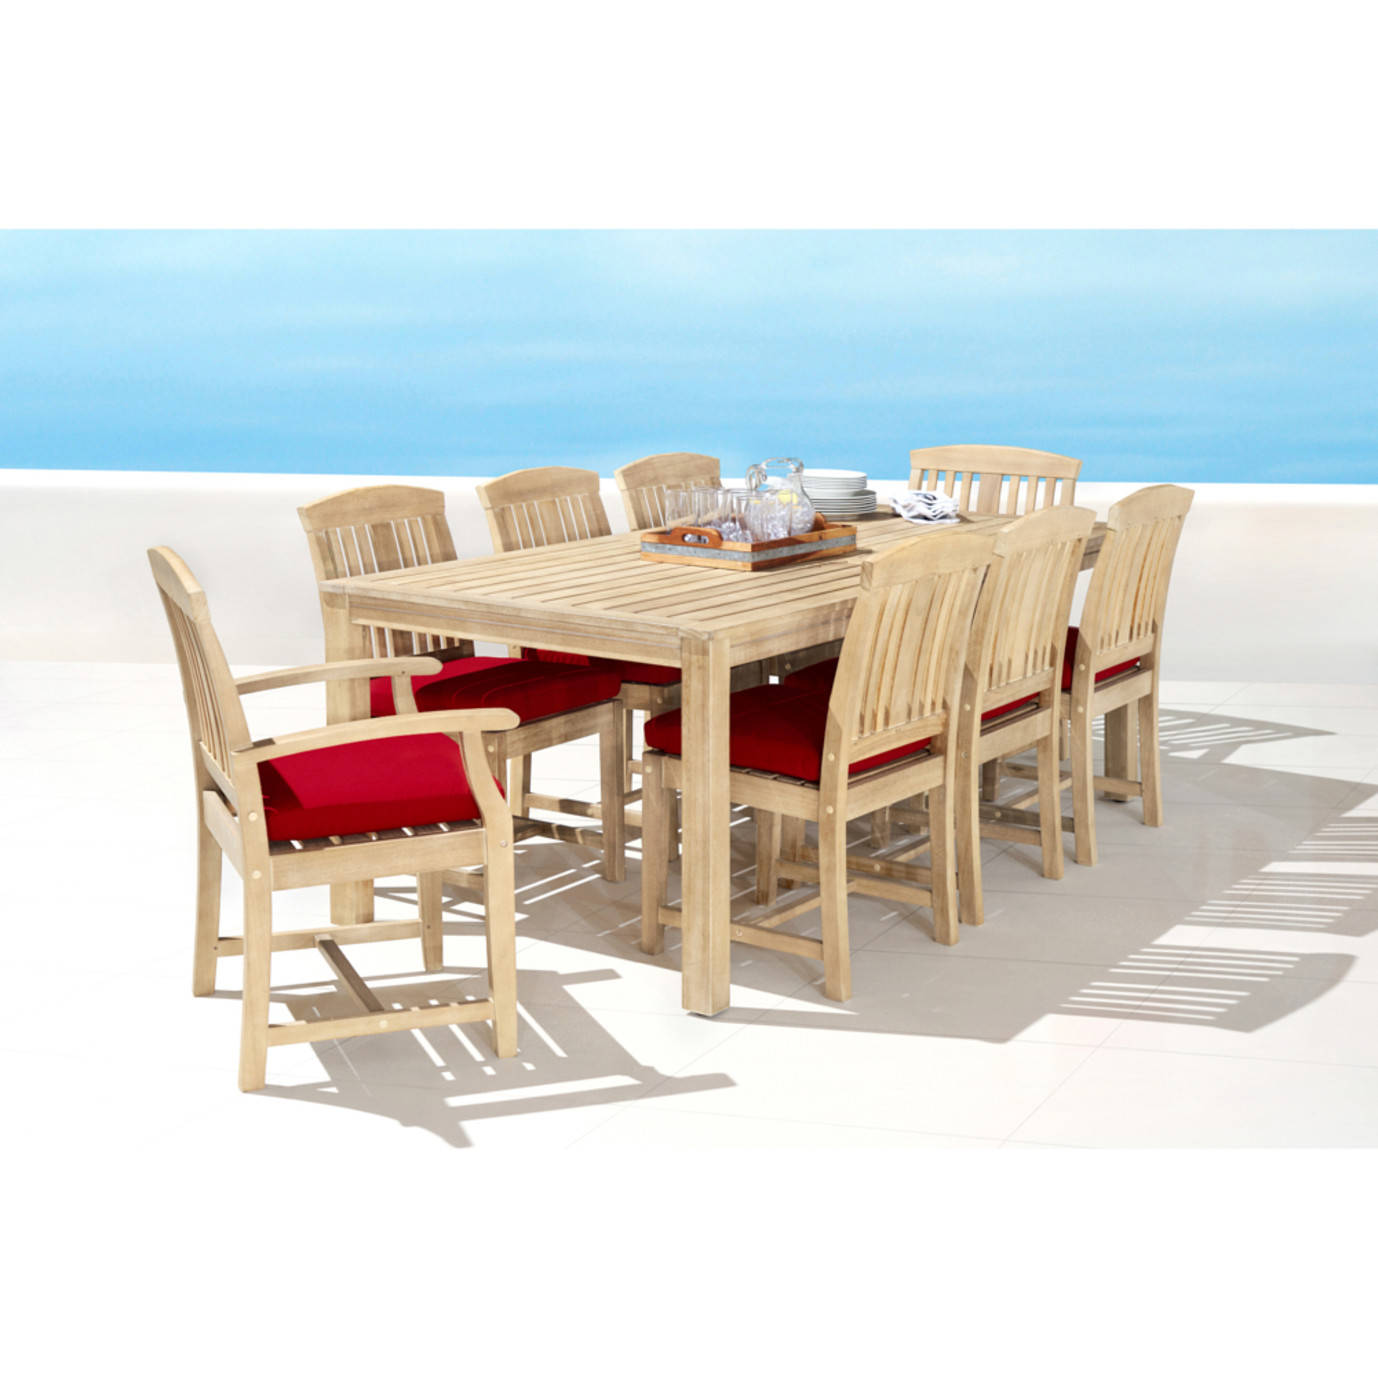 Kooper 9pc Outdoor Dining Set - Sunset Red